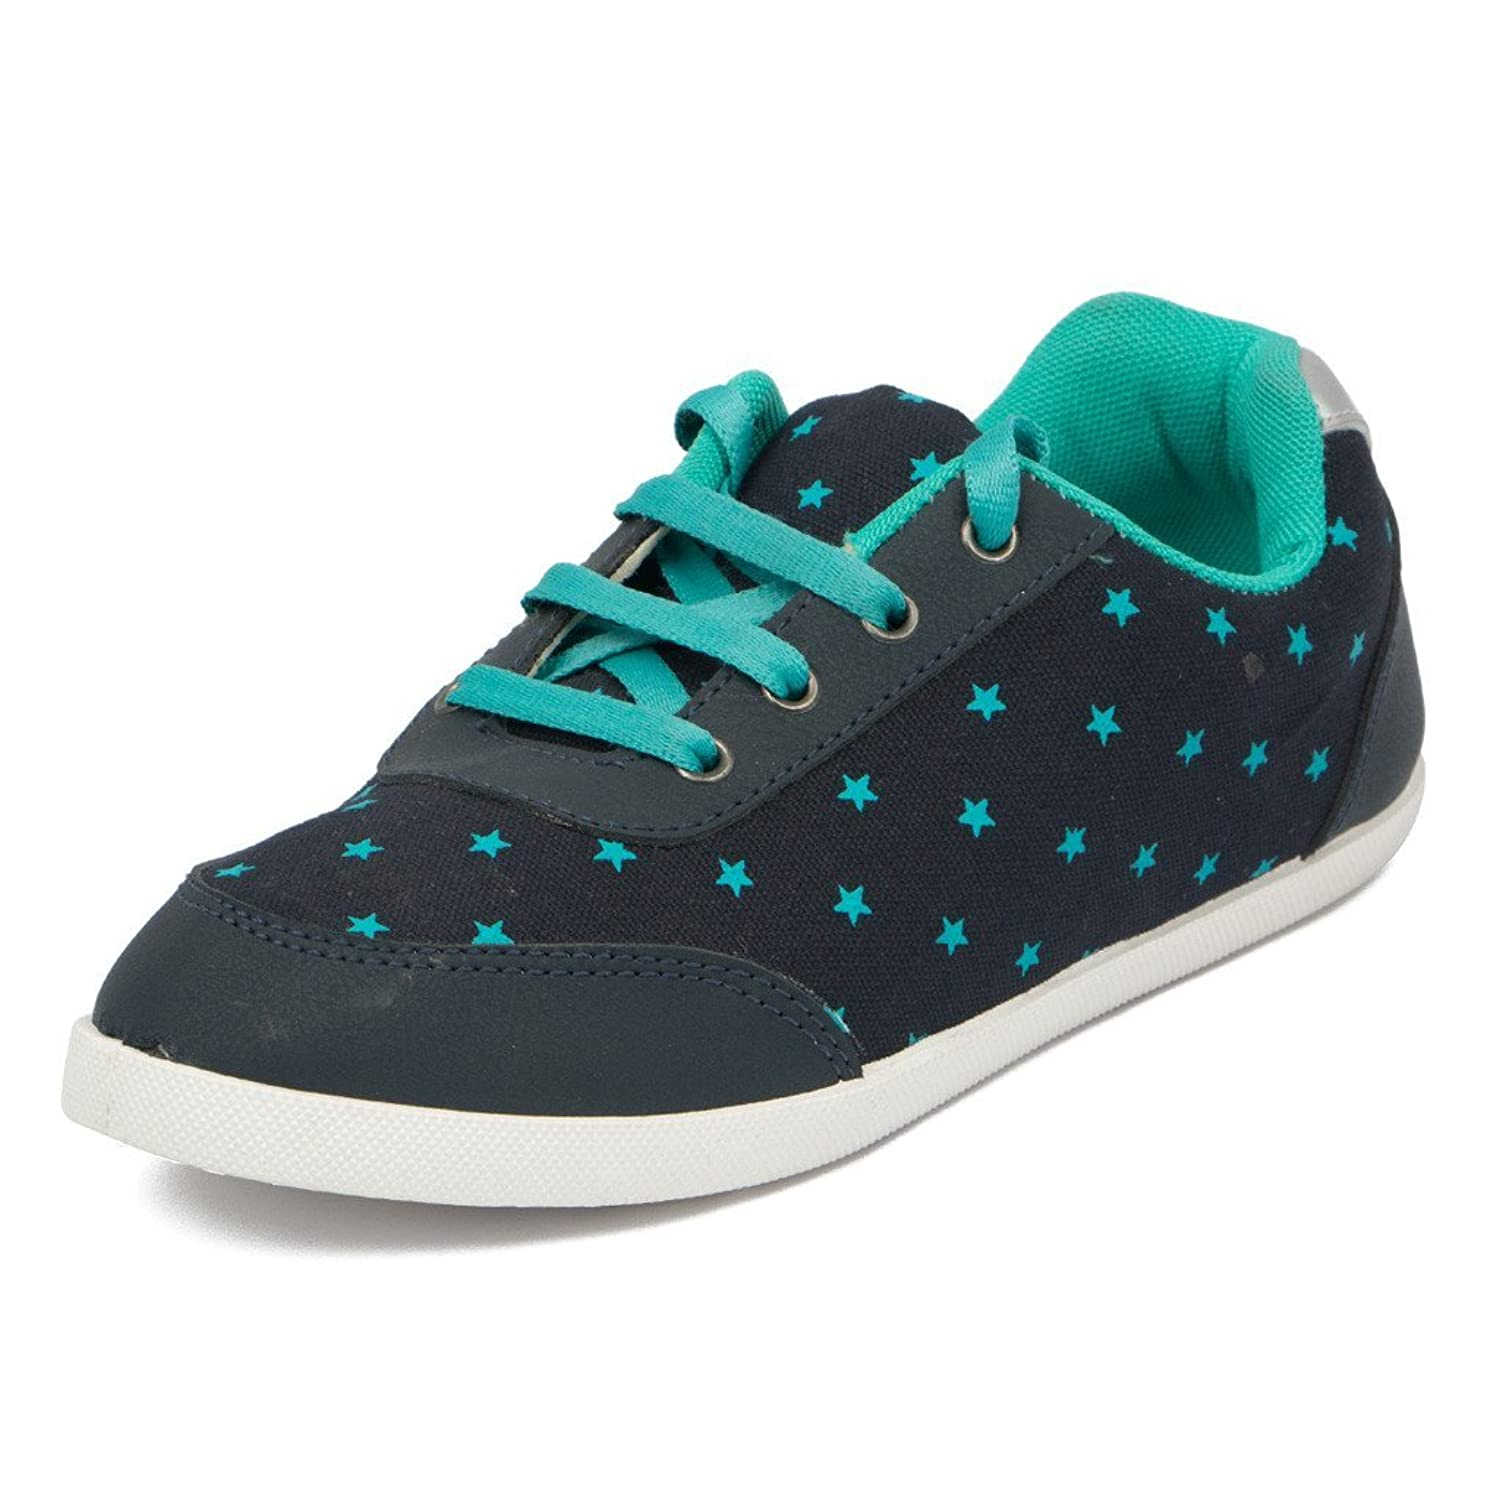 Women Sports Shoes - Clearance Sale discount offer  image 6